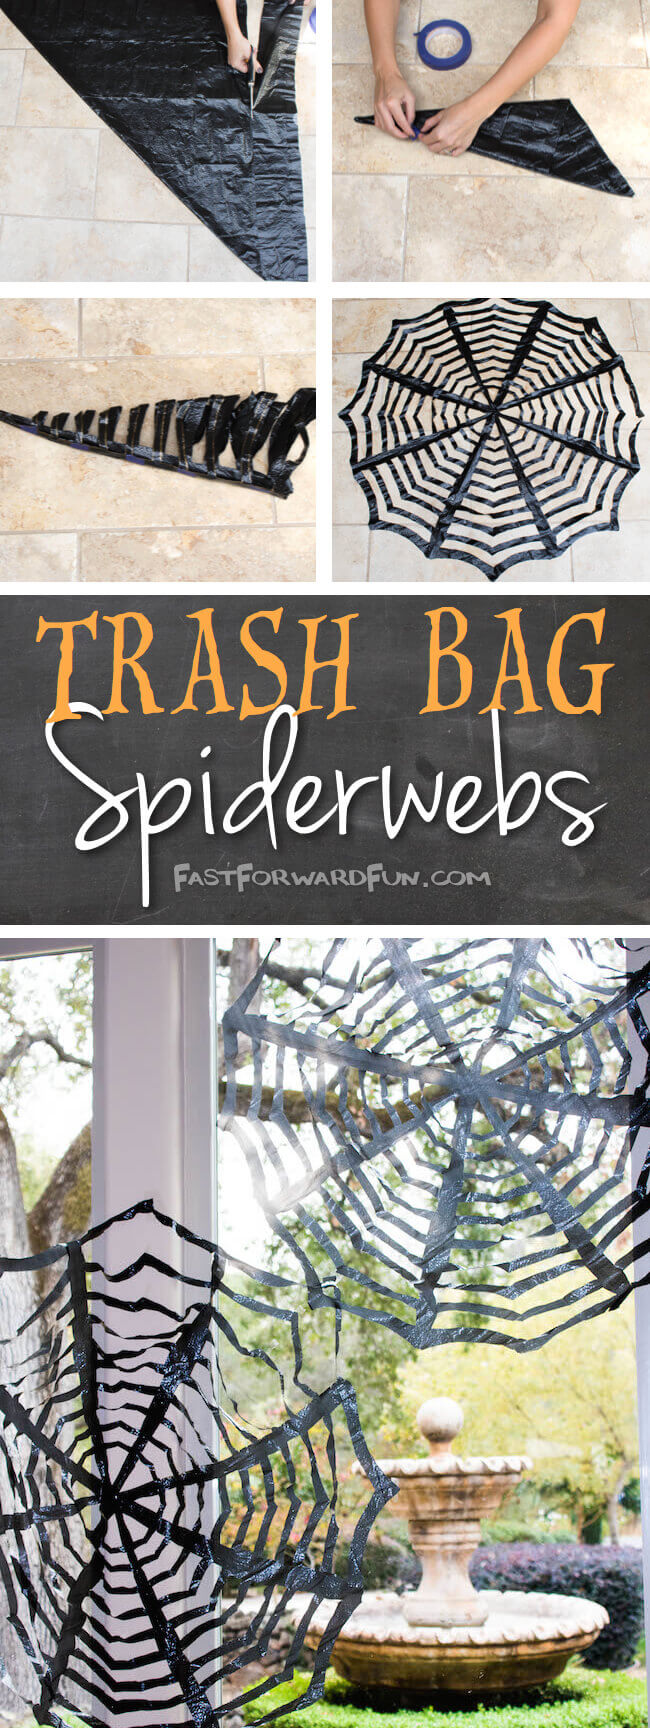 Easy diy trash bag spiderwebs.